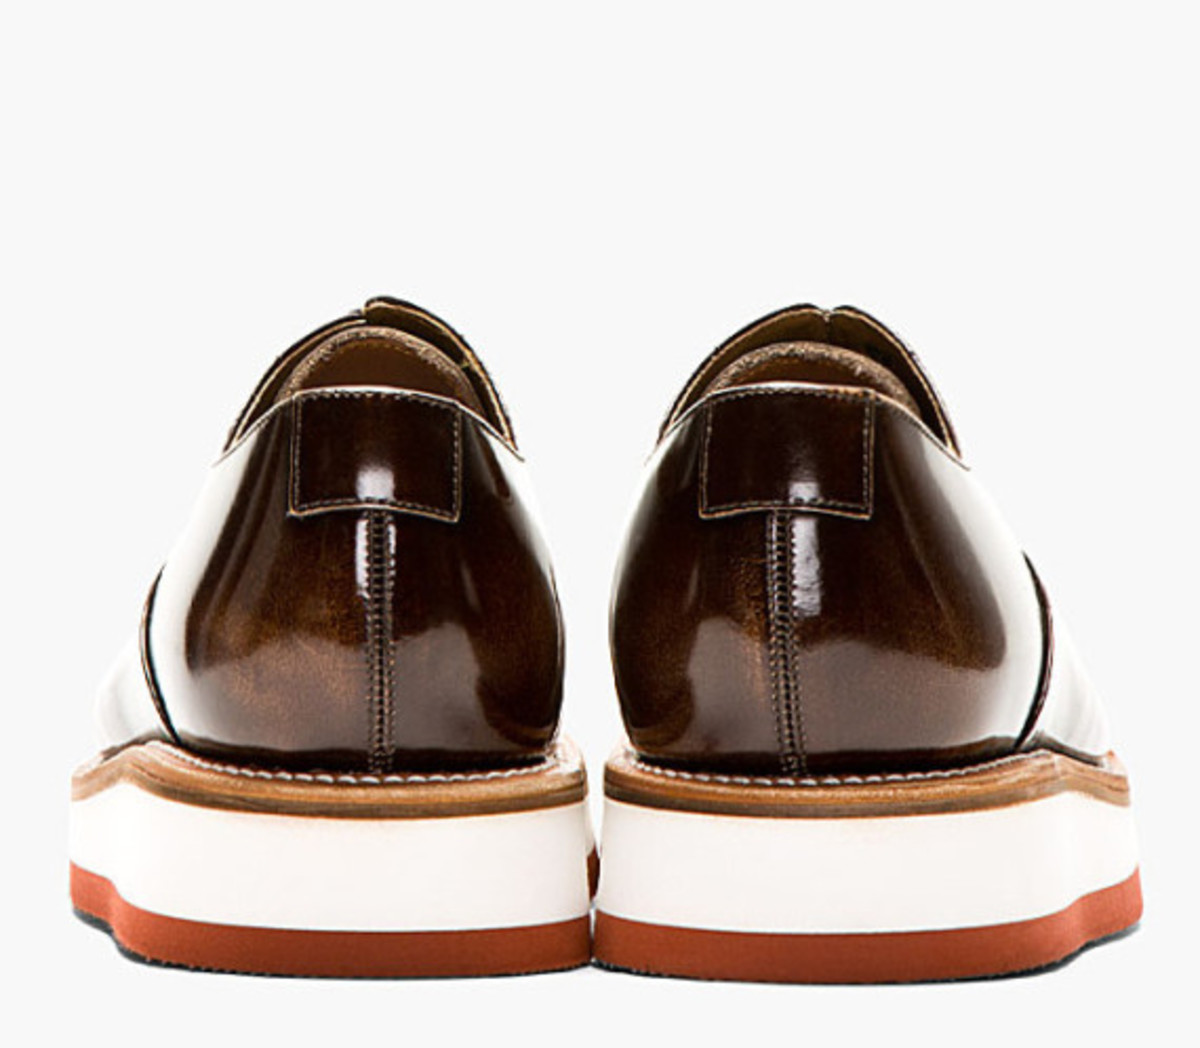 GRENSON - Sammy Oxford Shoe in Buffed Brown Leather - 4